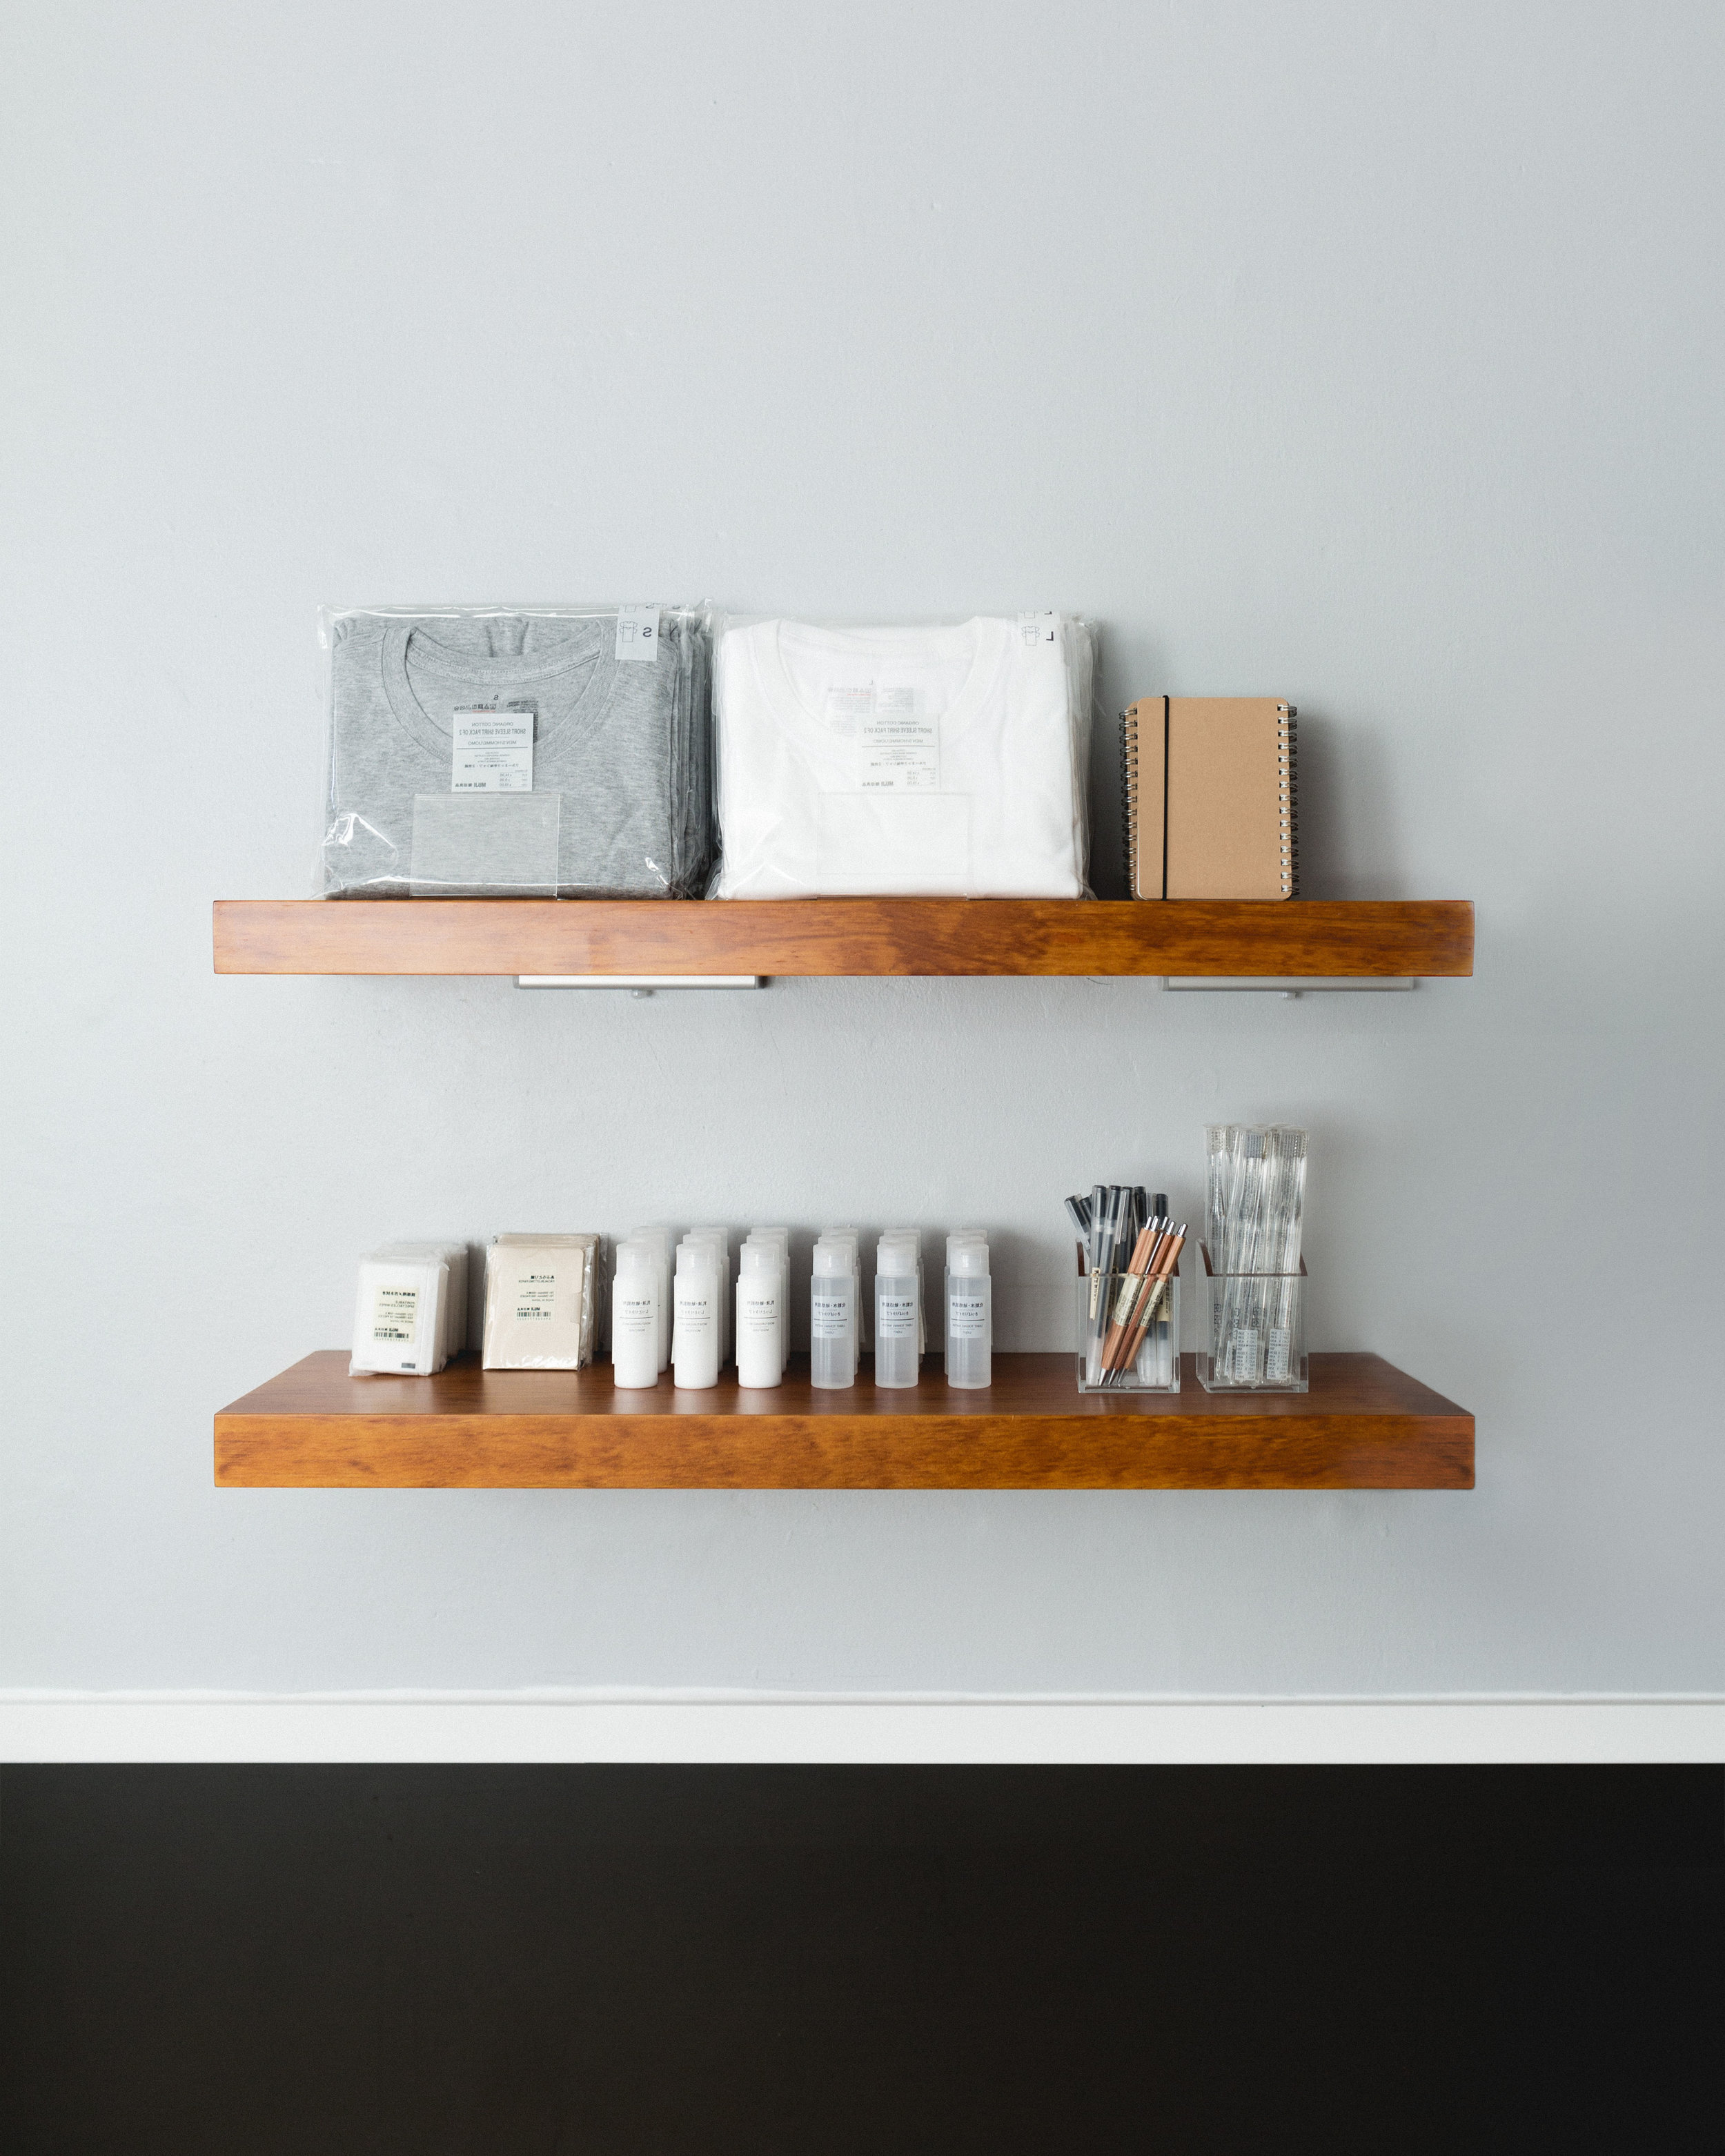 muji retail shelf.jpg